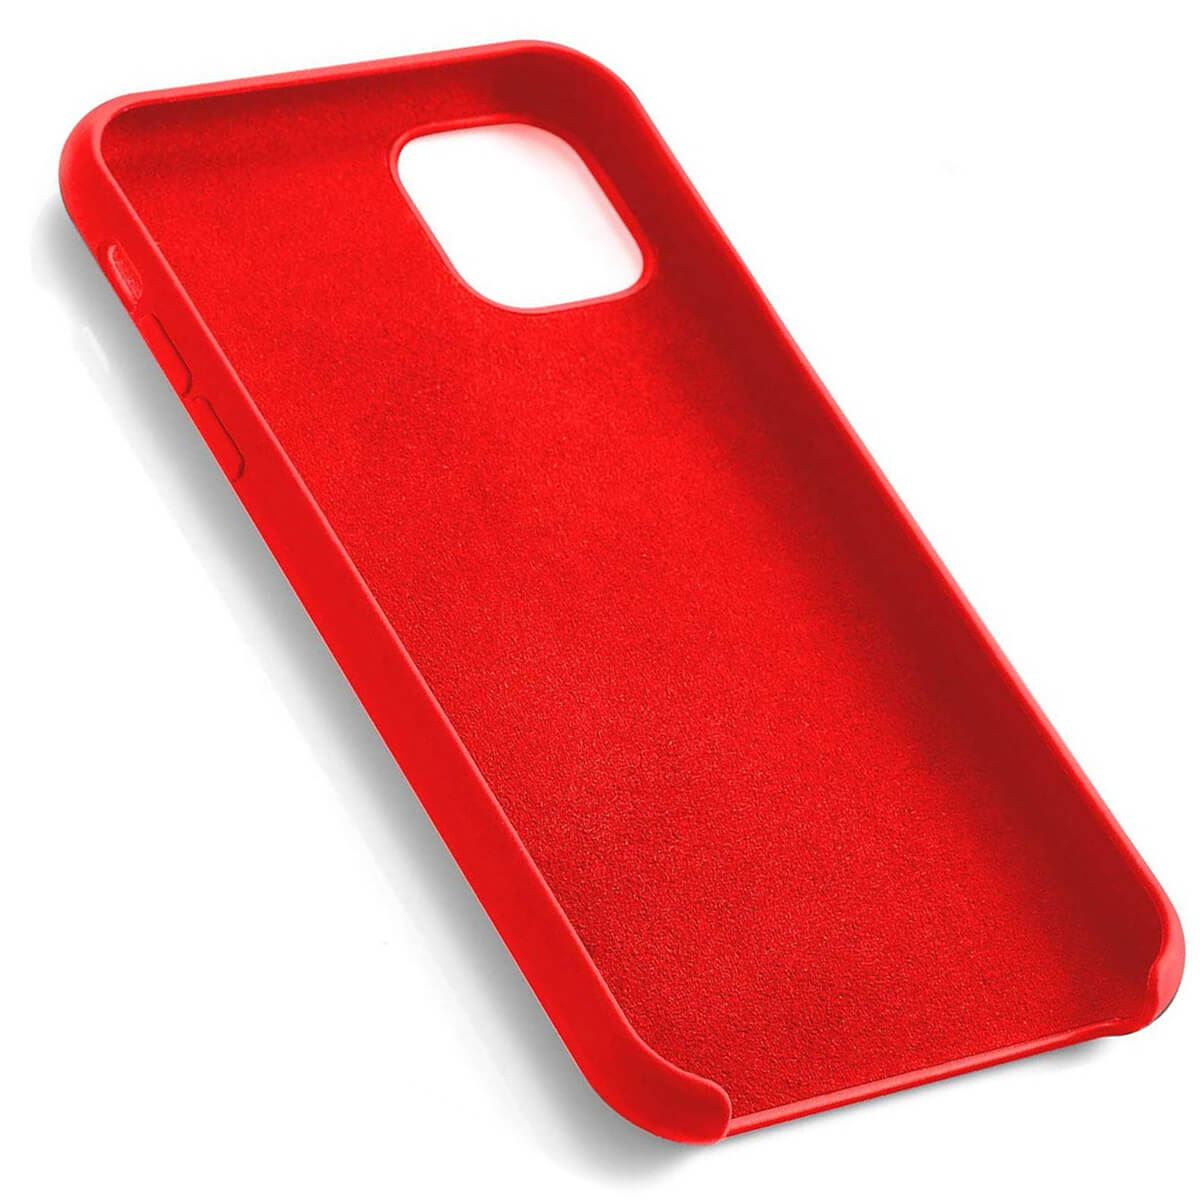 Liquid-Silicone-Shockproof-Case-For-Apple-iPhone-Soft-Matte-Back-Phone-Cover thumbnail 34